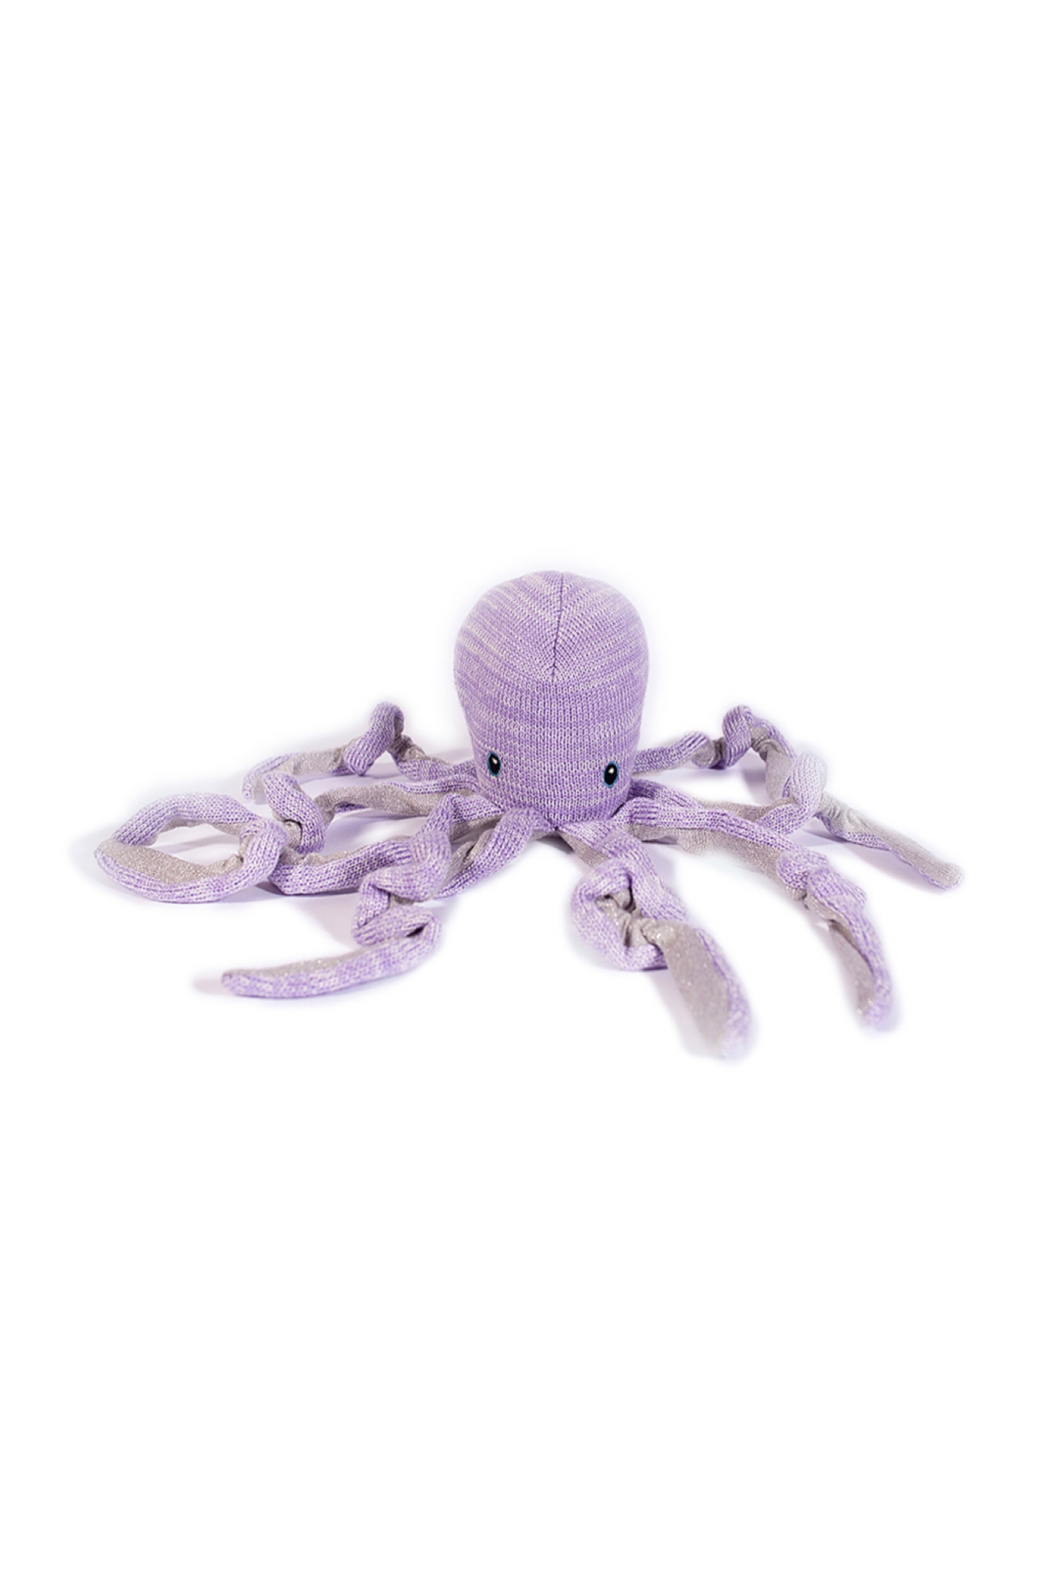 Mon Ami 'Opal' Octopus Baby Rattle - Main Image